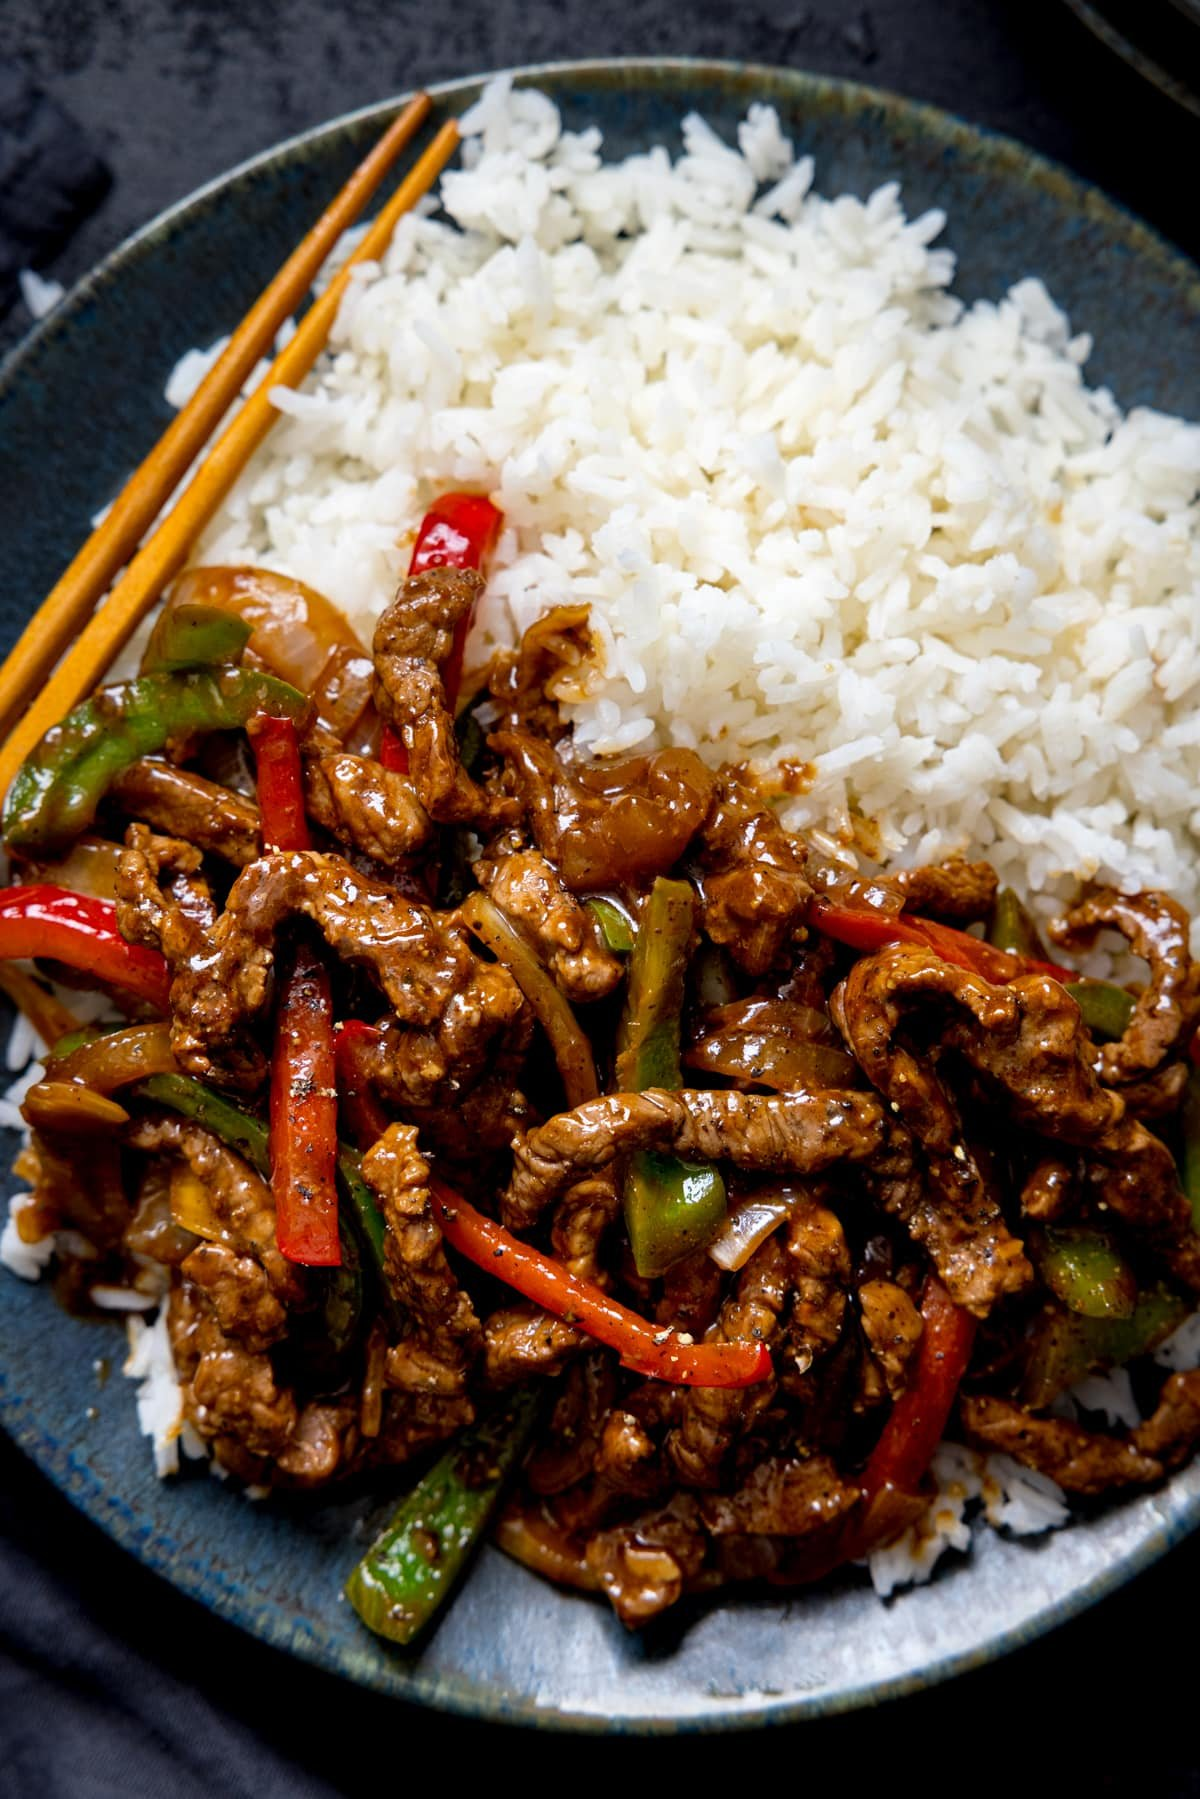 Black pepper beef stir fry with red and green peppers in a black bowl with boiled rice.